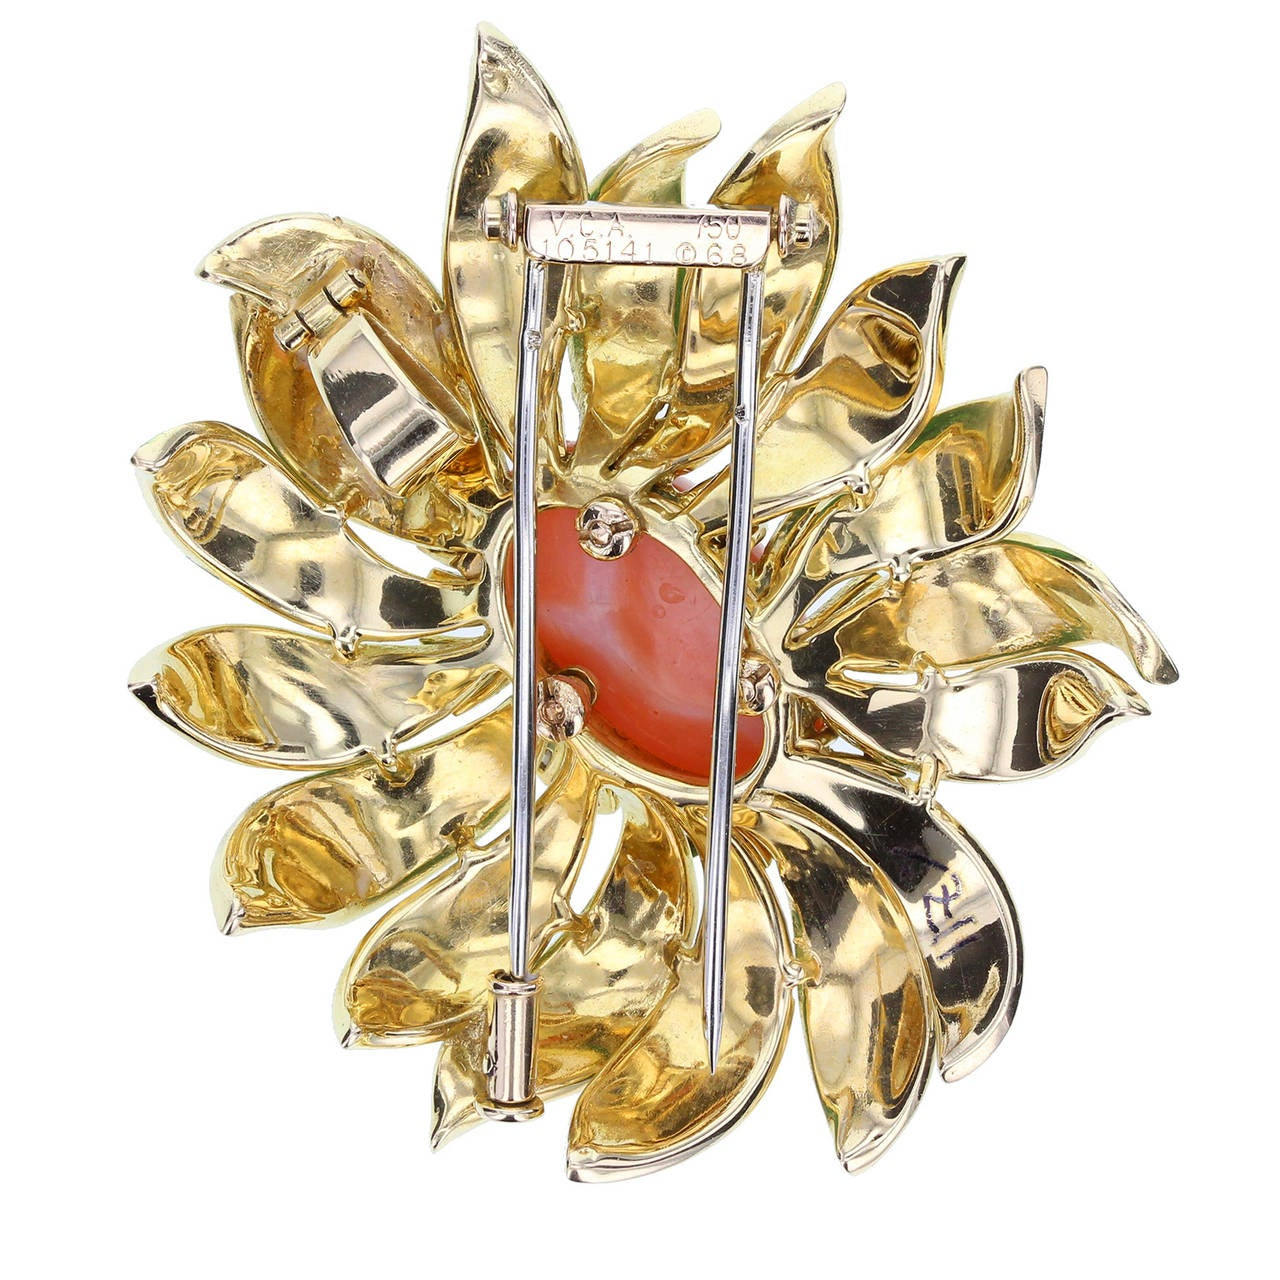 Central pink coral cabochon surrounded by gold foliate decoration, adorned with diamonds and green enamel. Brooch fastening to rear with hinged bale so may be worn as either a brooch or pendant necklace. Signed VCA